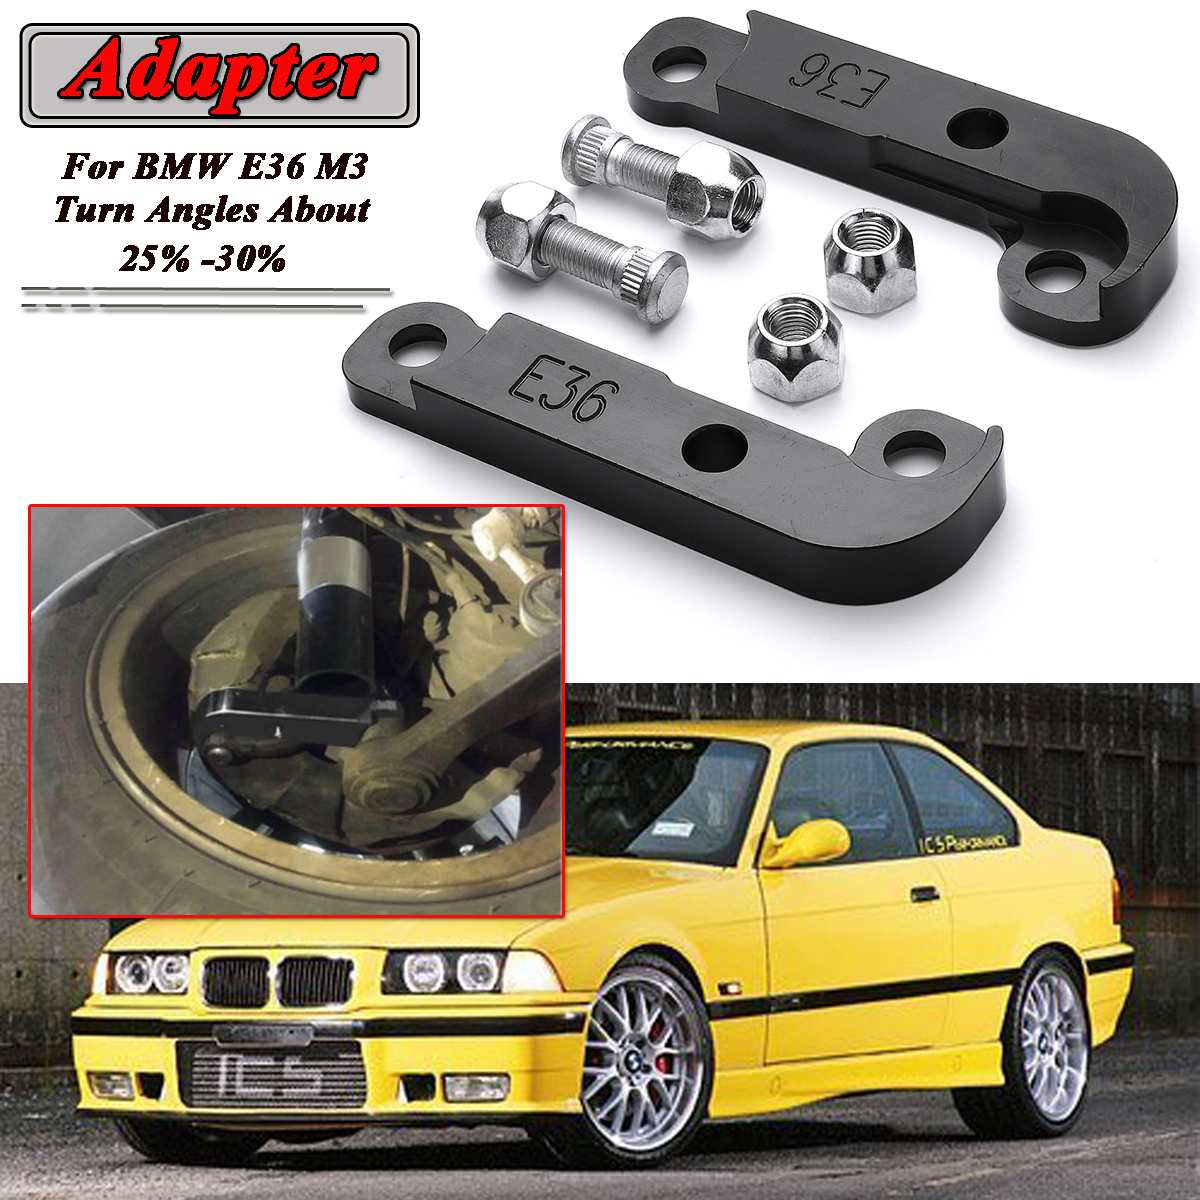 Black/Silver/Red/Blue 2pcs E36 M3 Adapter Tire Increasing Turn Angles About 25%-30% Drift Lock Kit For BMW E36 M3 06CSF005ARD